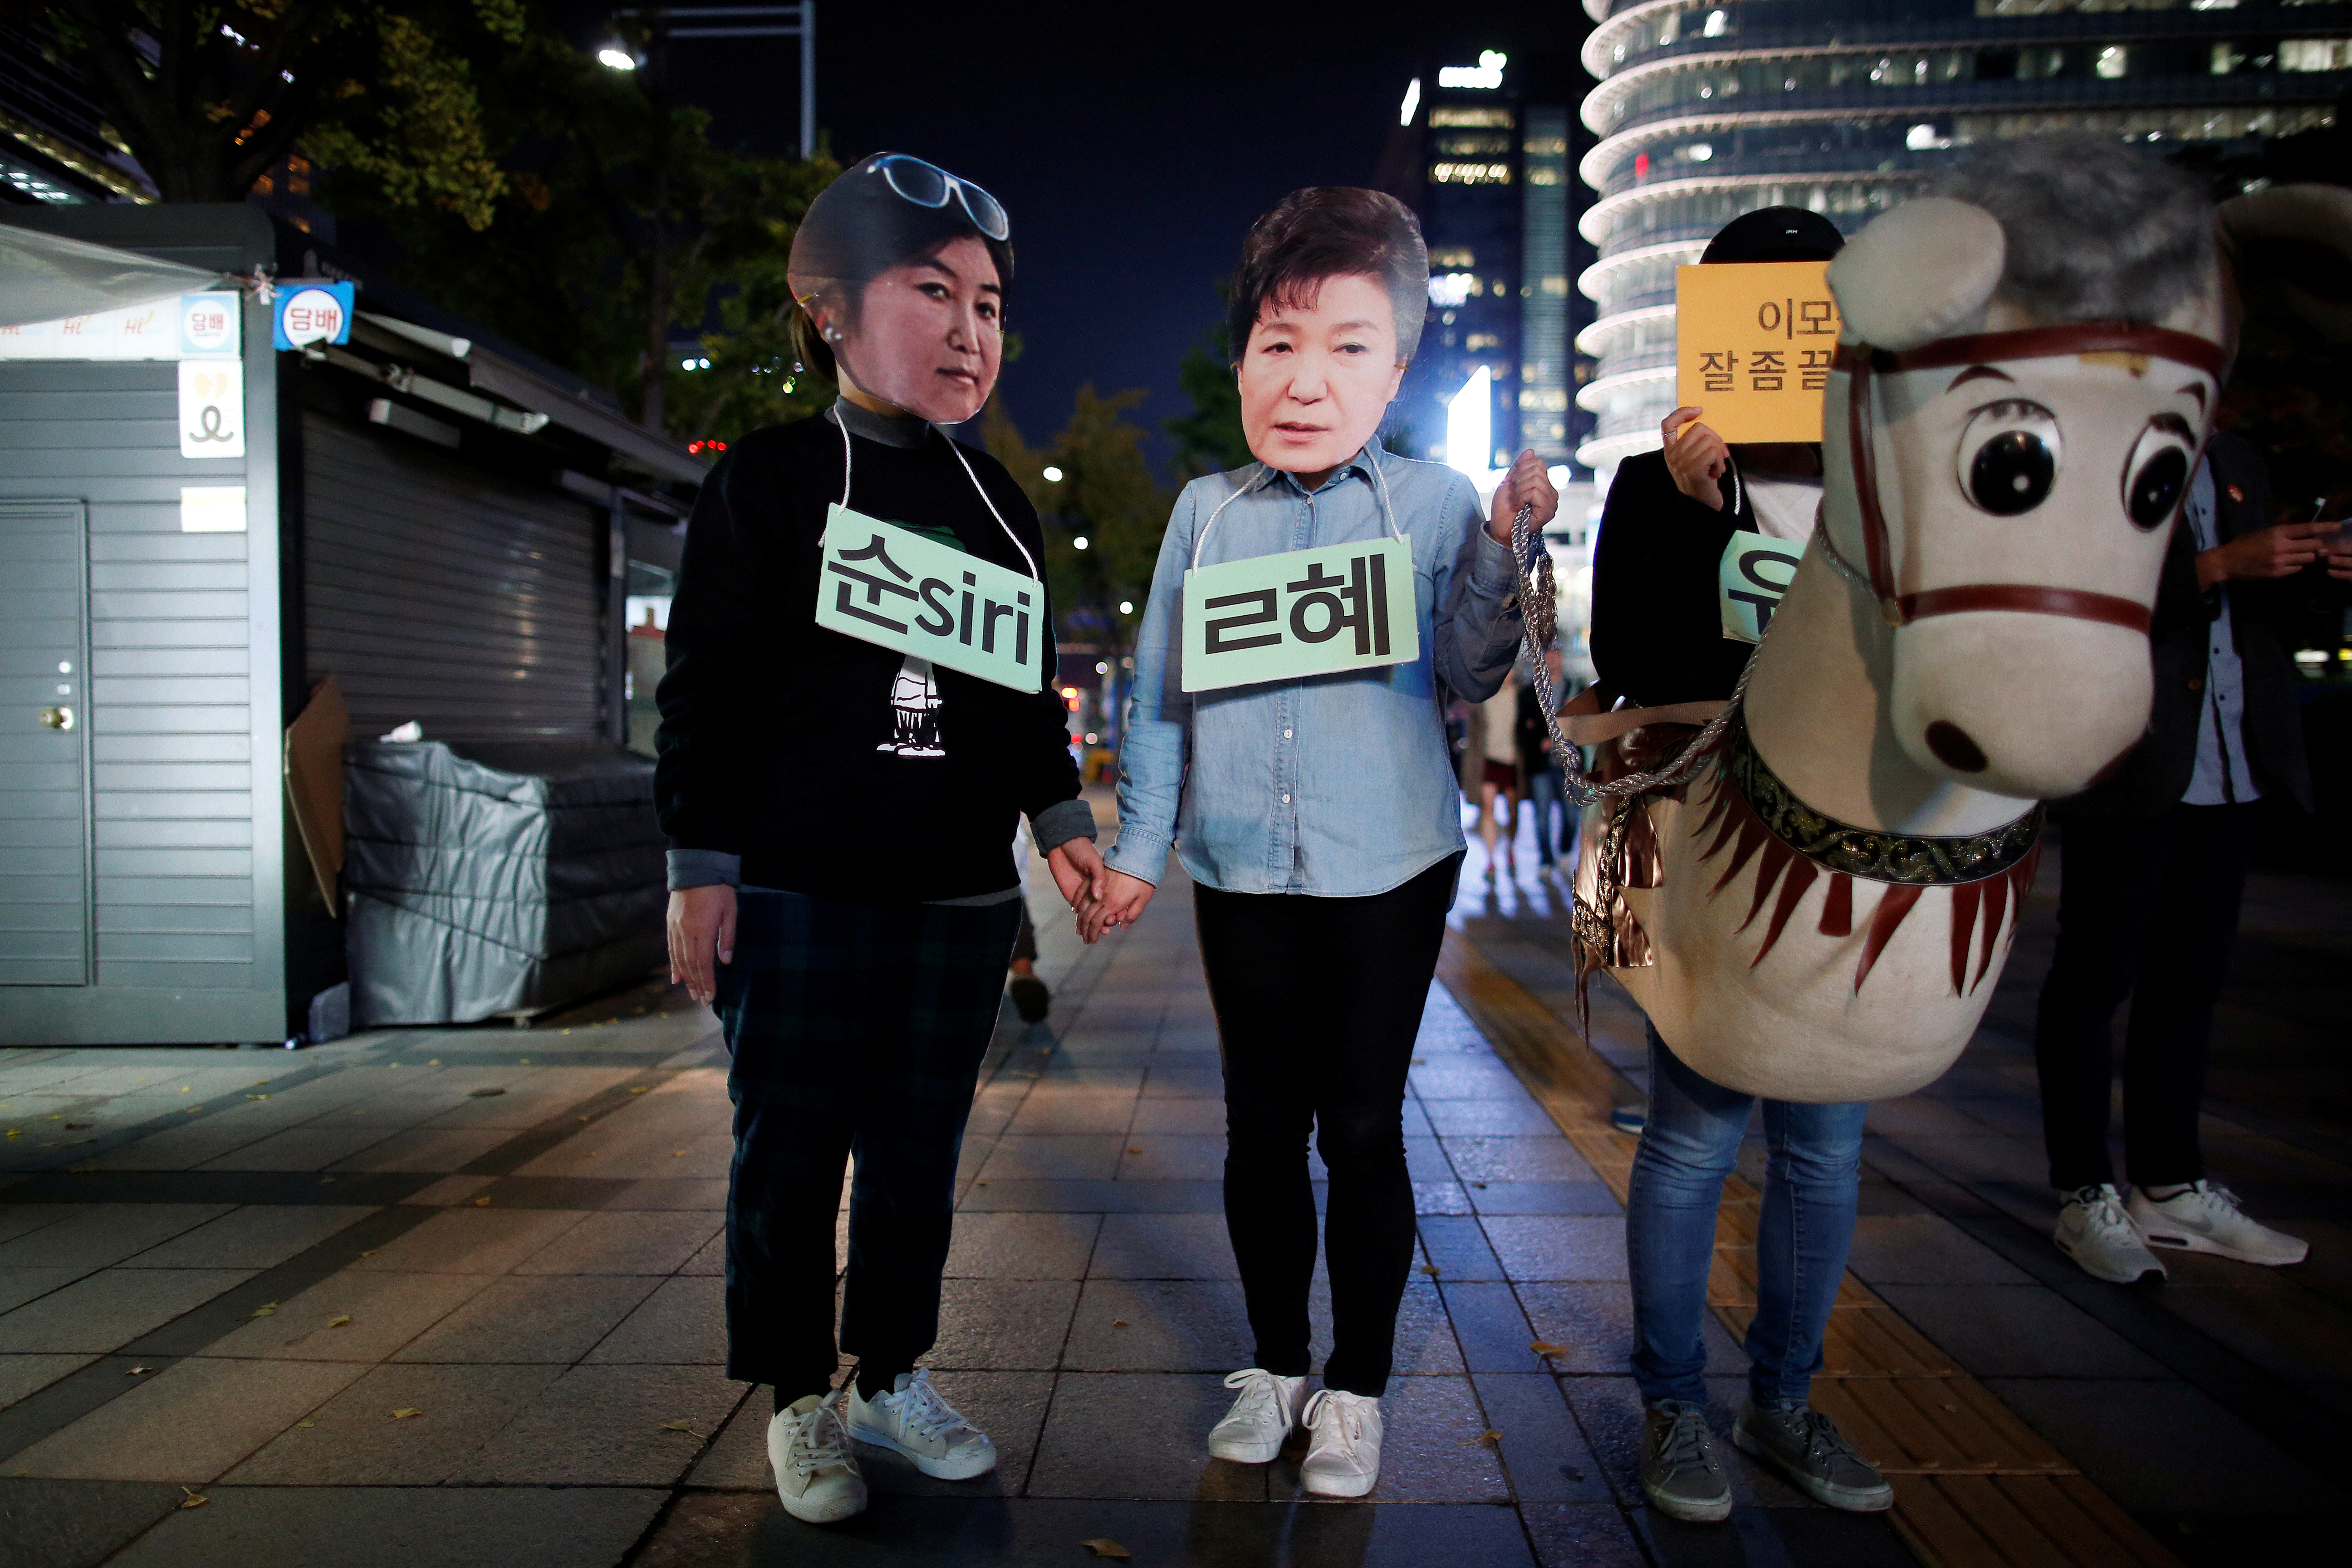 Protesters wearing cut-out of South Korean President Park Geun-hye (C) and Choi Soon-sil attend a protest denouncing President Park Geun-hye over a recent influence-peddling scandal in central Seoul, South Korea, October 27, 2016. REUTERS/Kim Hong-Ji - RTX2QP5W